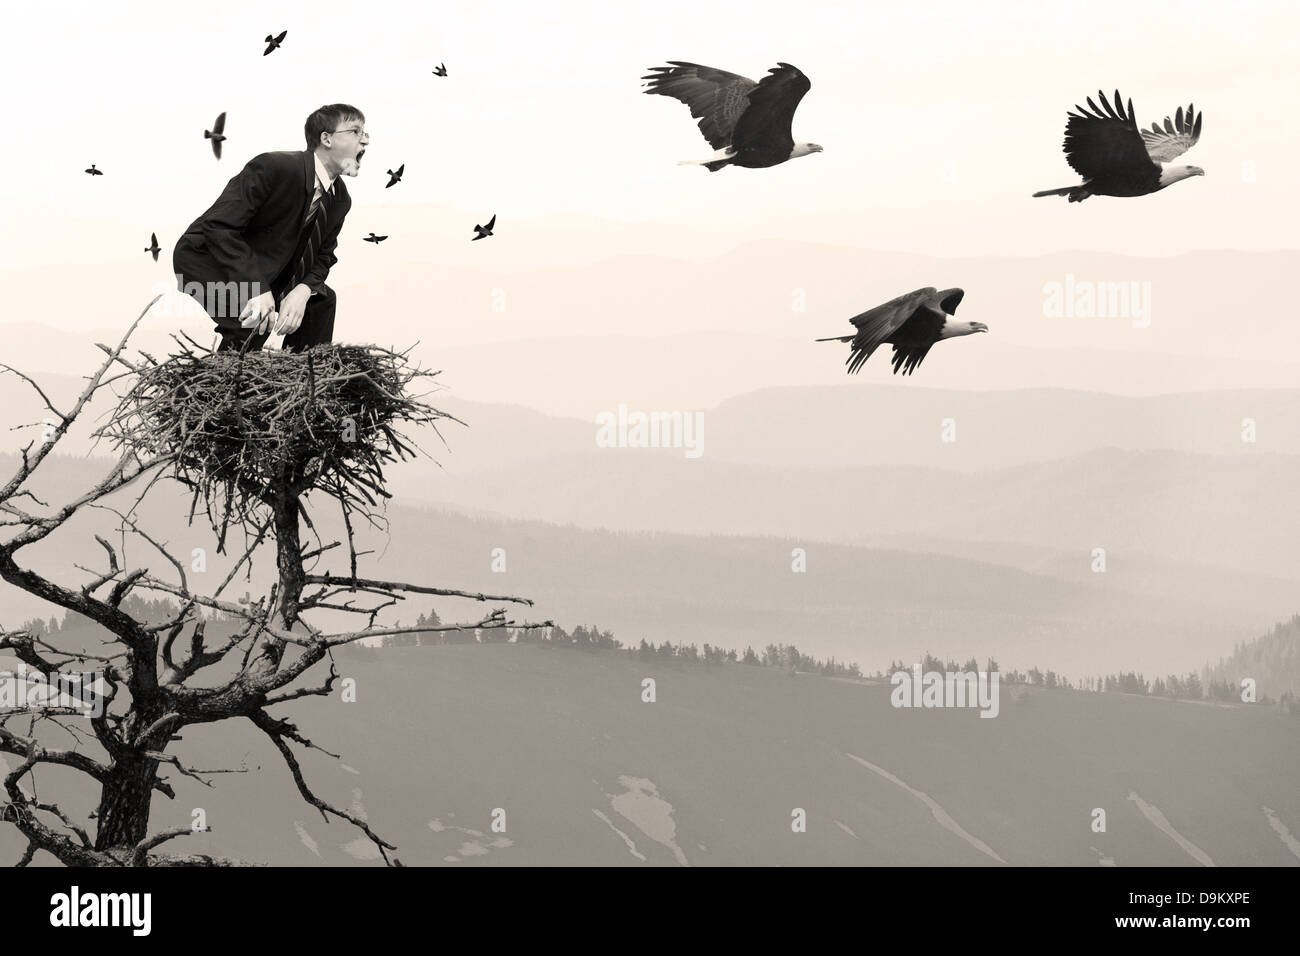 businessman in net screaming at eagles flying away scared birds flying away nature man conflict environmental concern - Stock Image